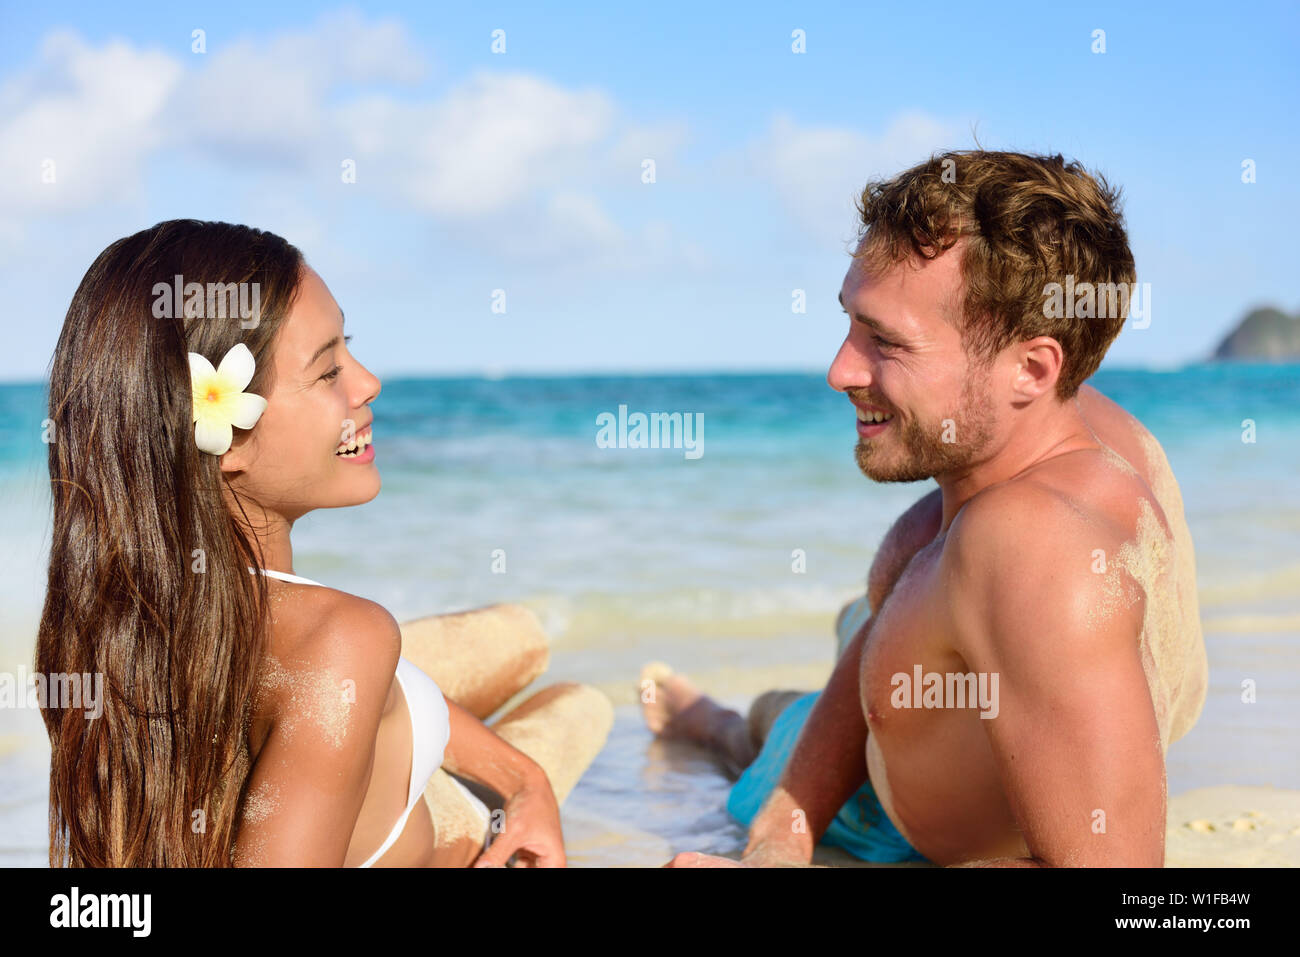 Vacation couple relaxing on beach tanning laughing talking together. Portrait of two young adults mixed race asian caucasian having fun during travel holidays. - Stock Image